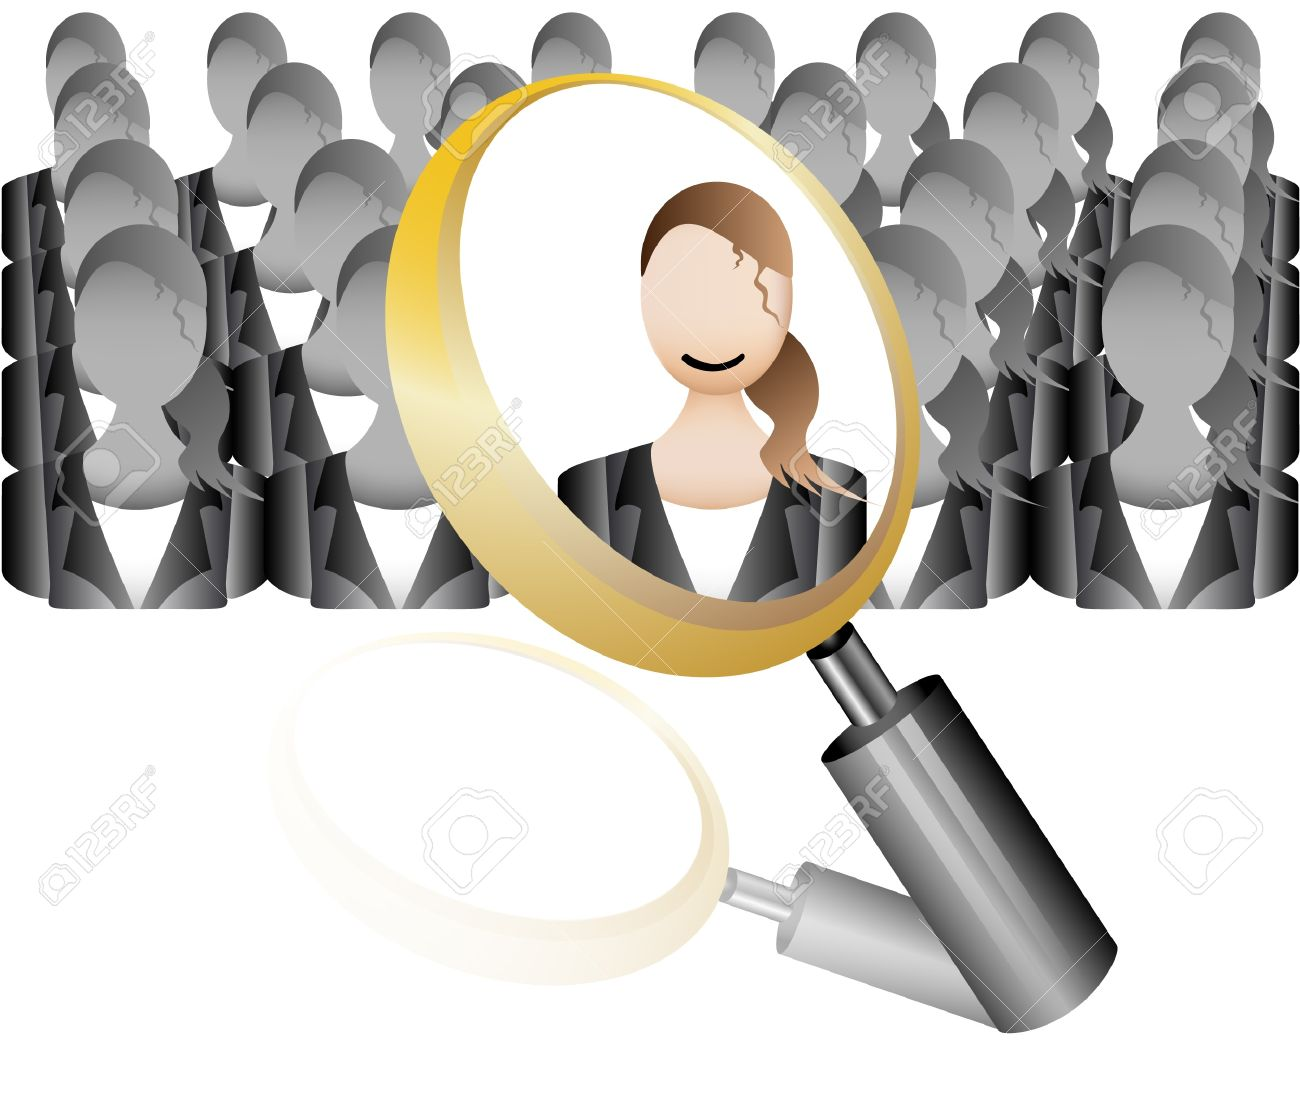 search Employee Icon for Recruitment Agency Magnifier with Business Stock Vector - 18583035